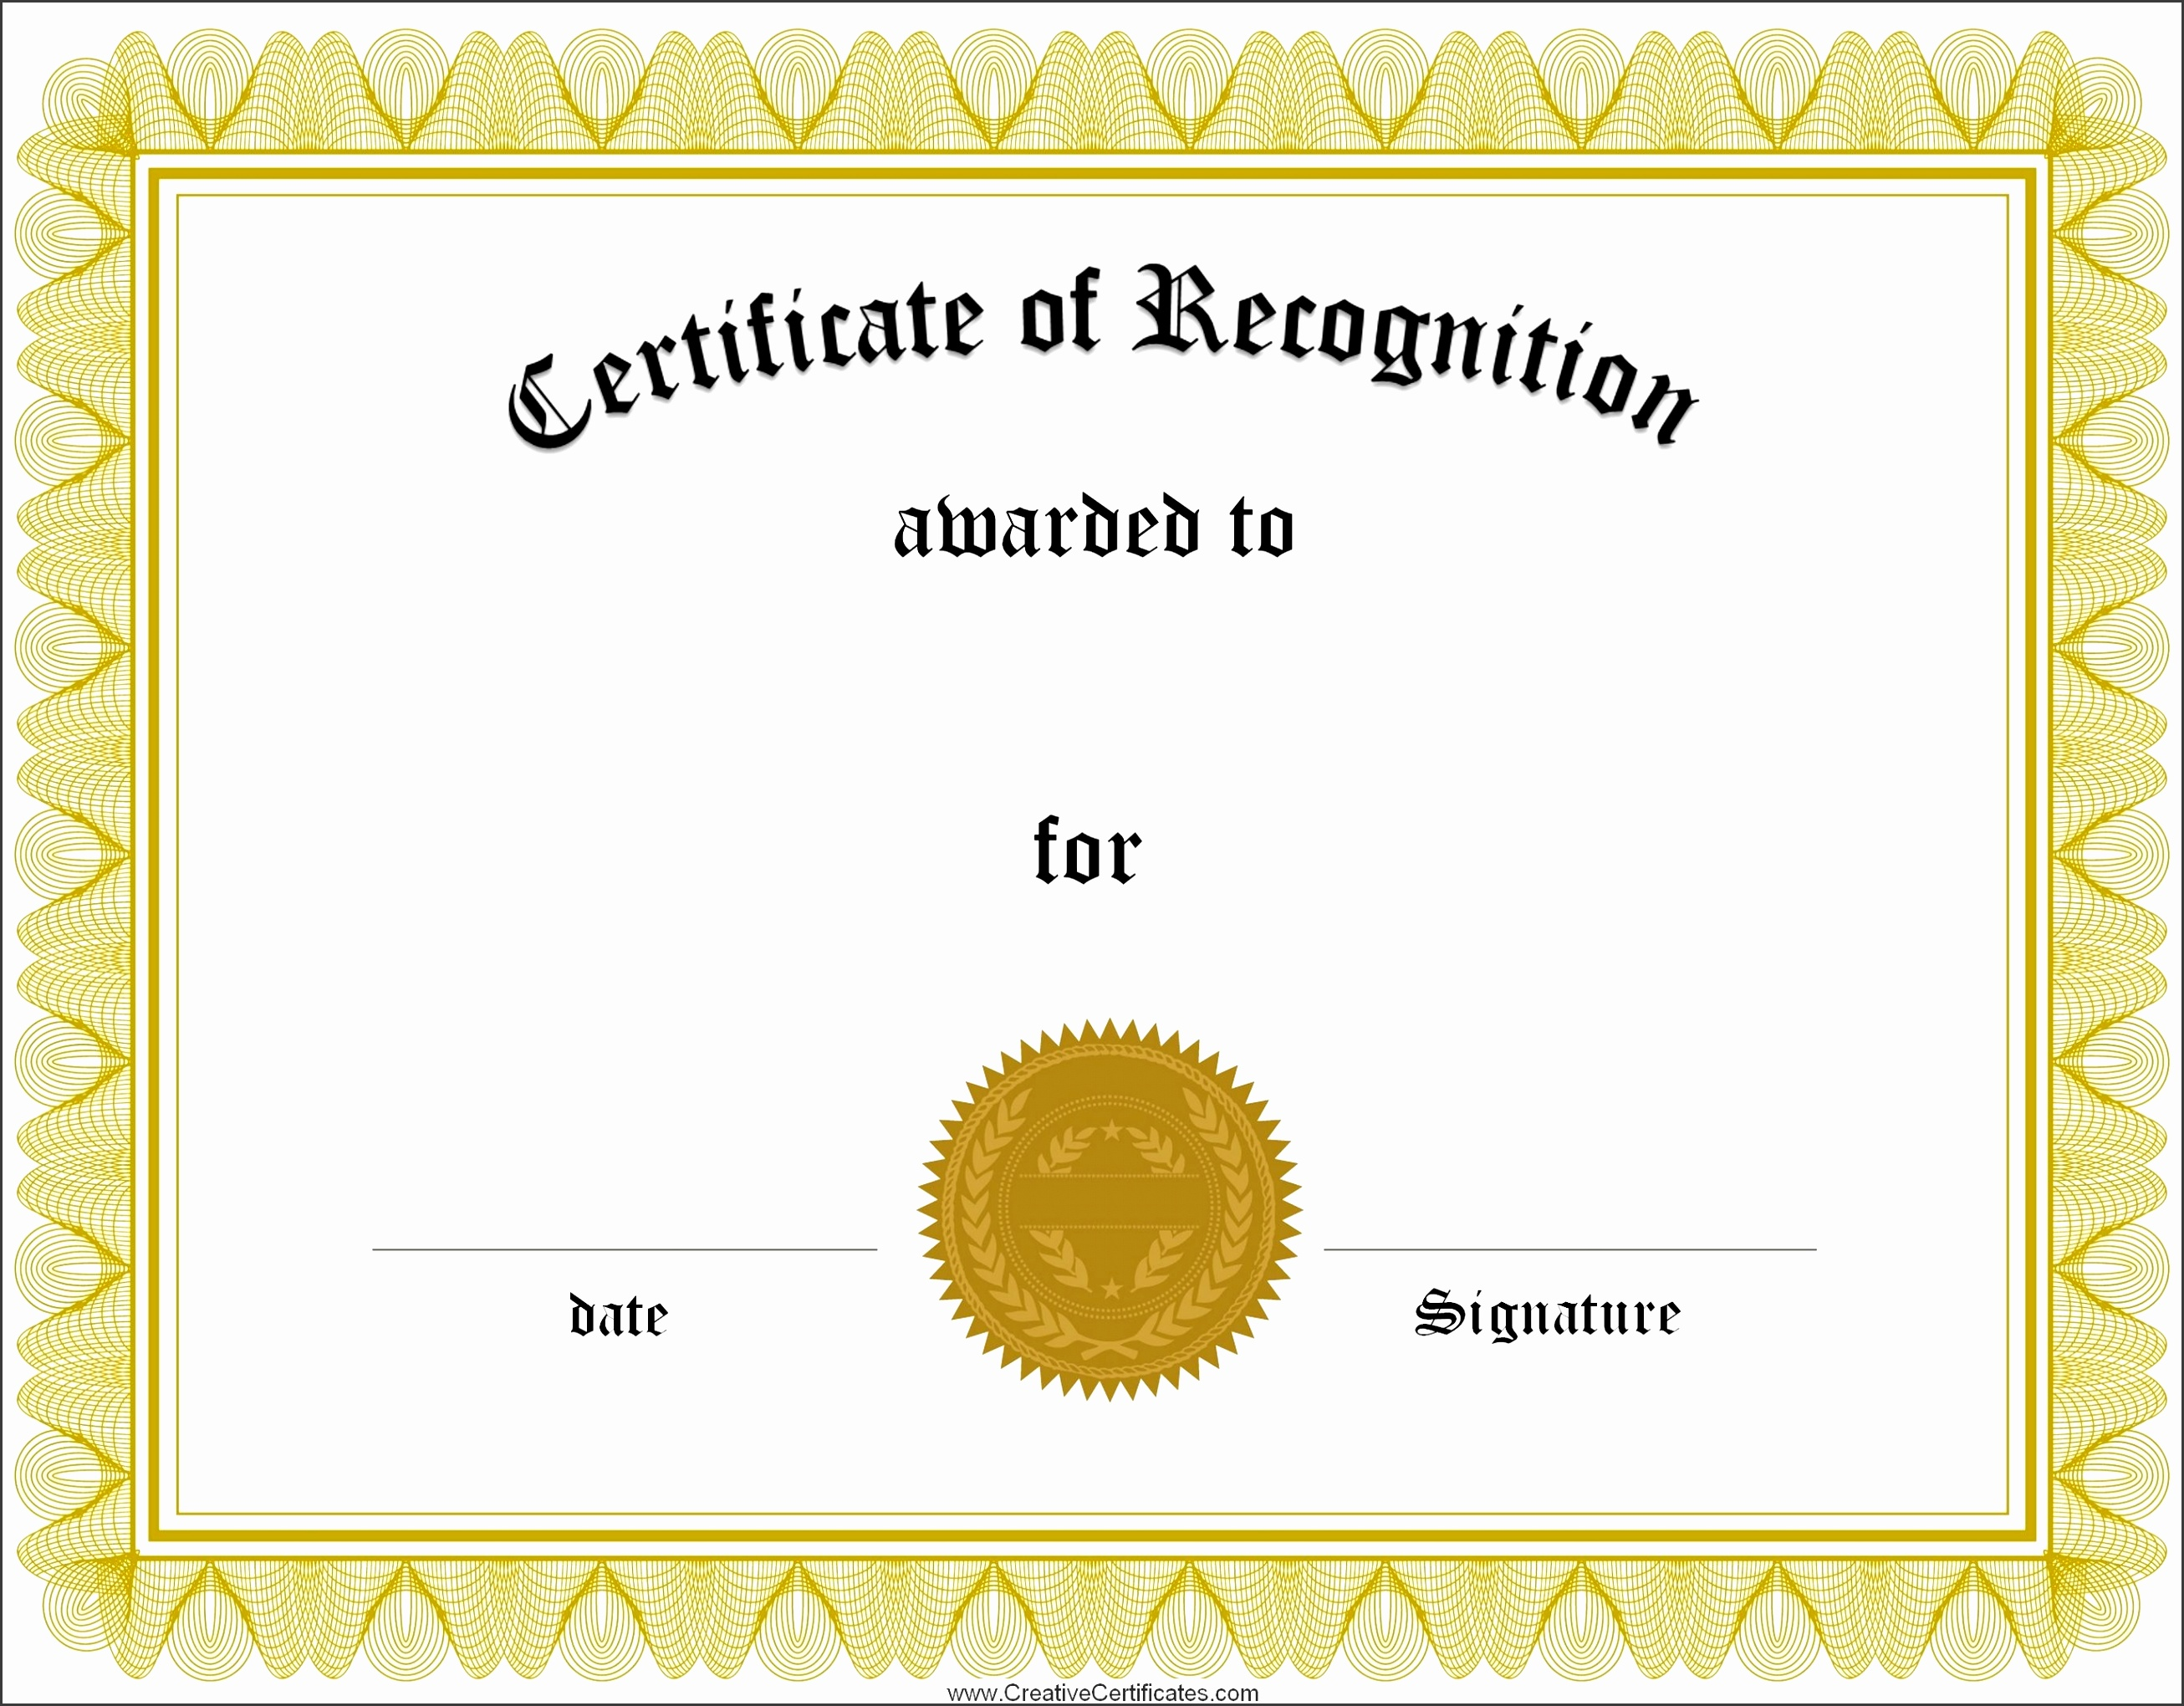 certificate of recognition template certificate of recognition template DeqjQC